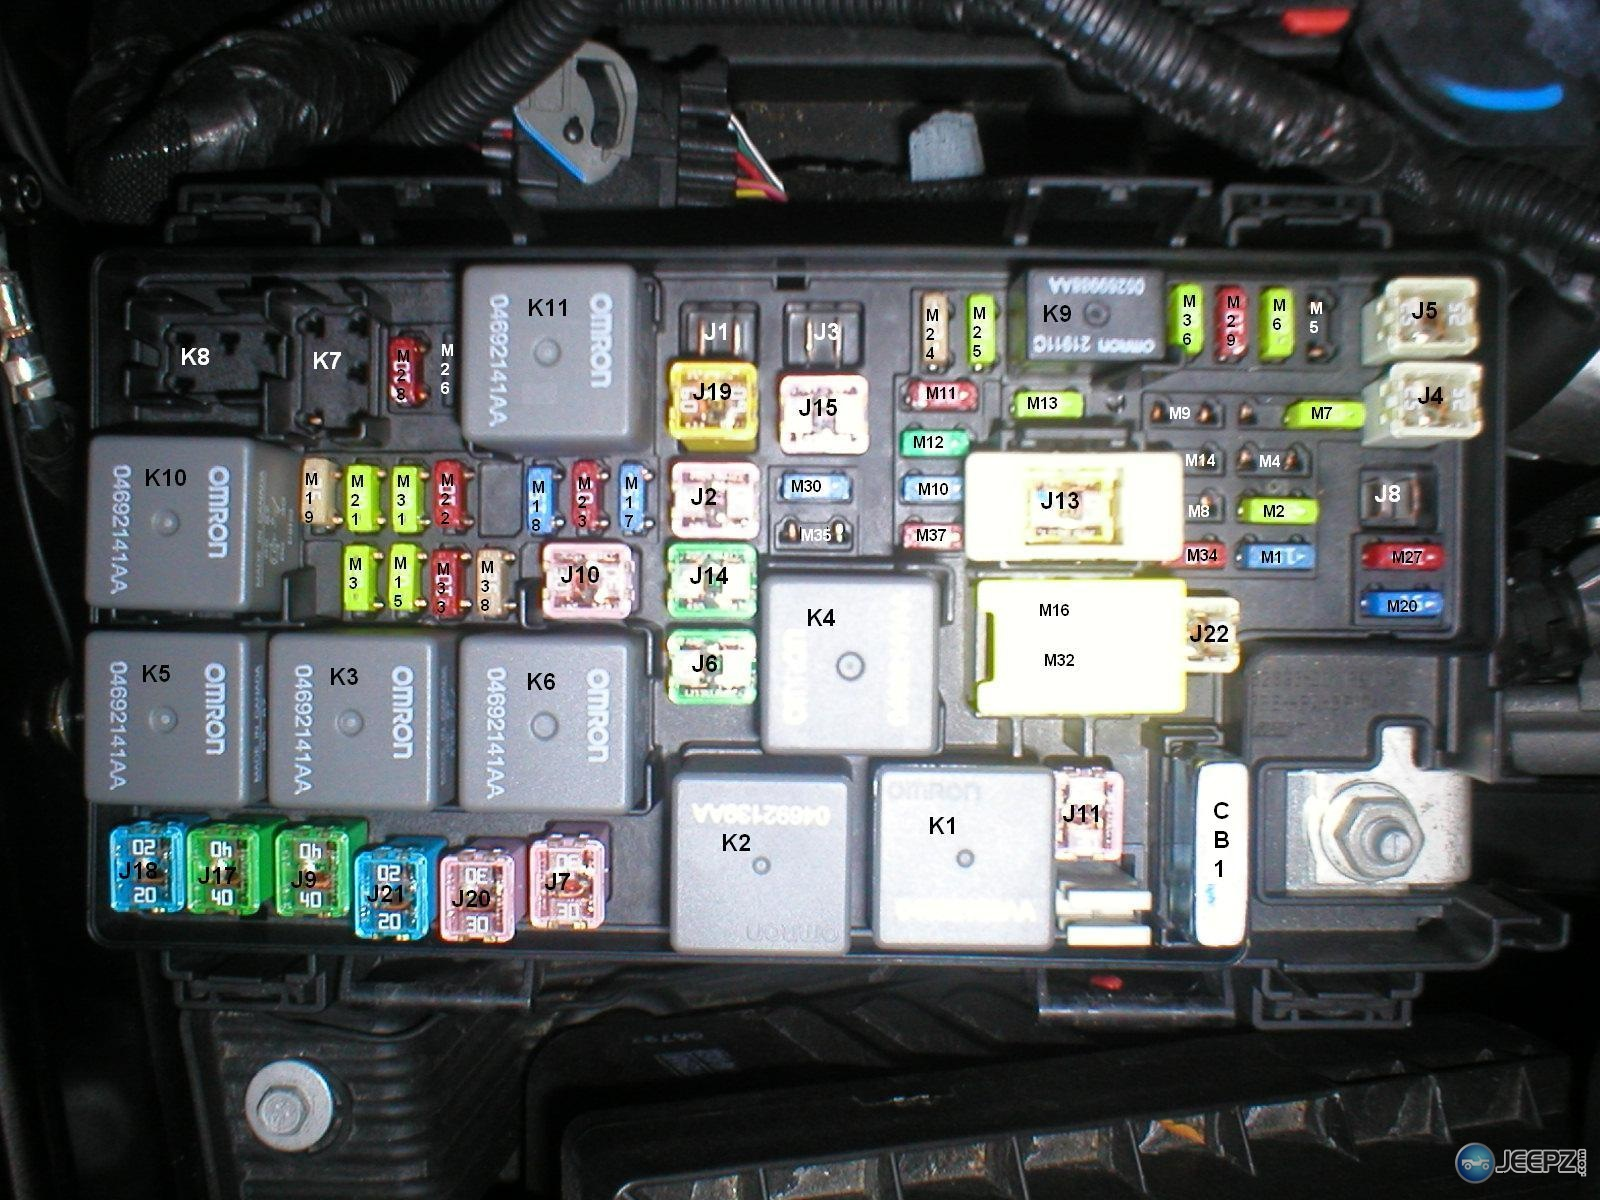 4488d1265060159 jeep jk 2009 fuse map layout diagram jkfusebox2009 jeep jk 2009 fuse map layout diagram jeep liberty fuse box at mifinder.co